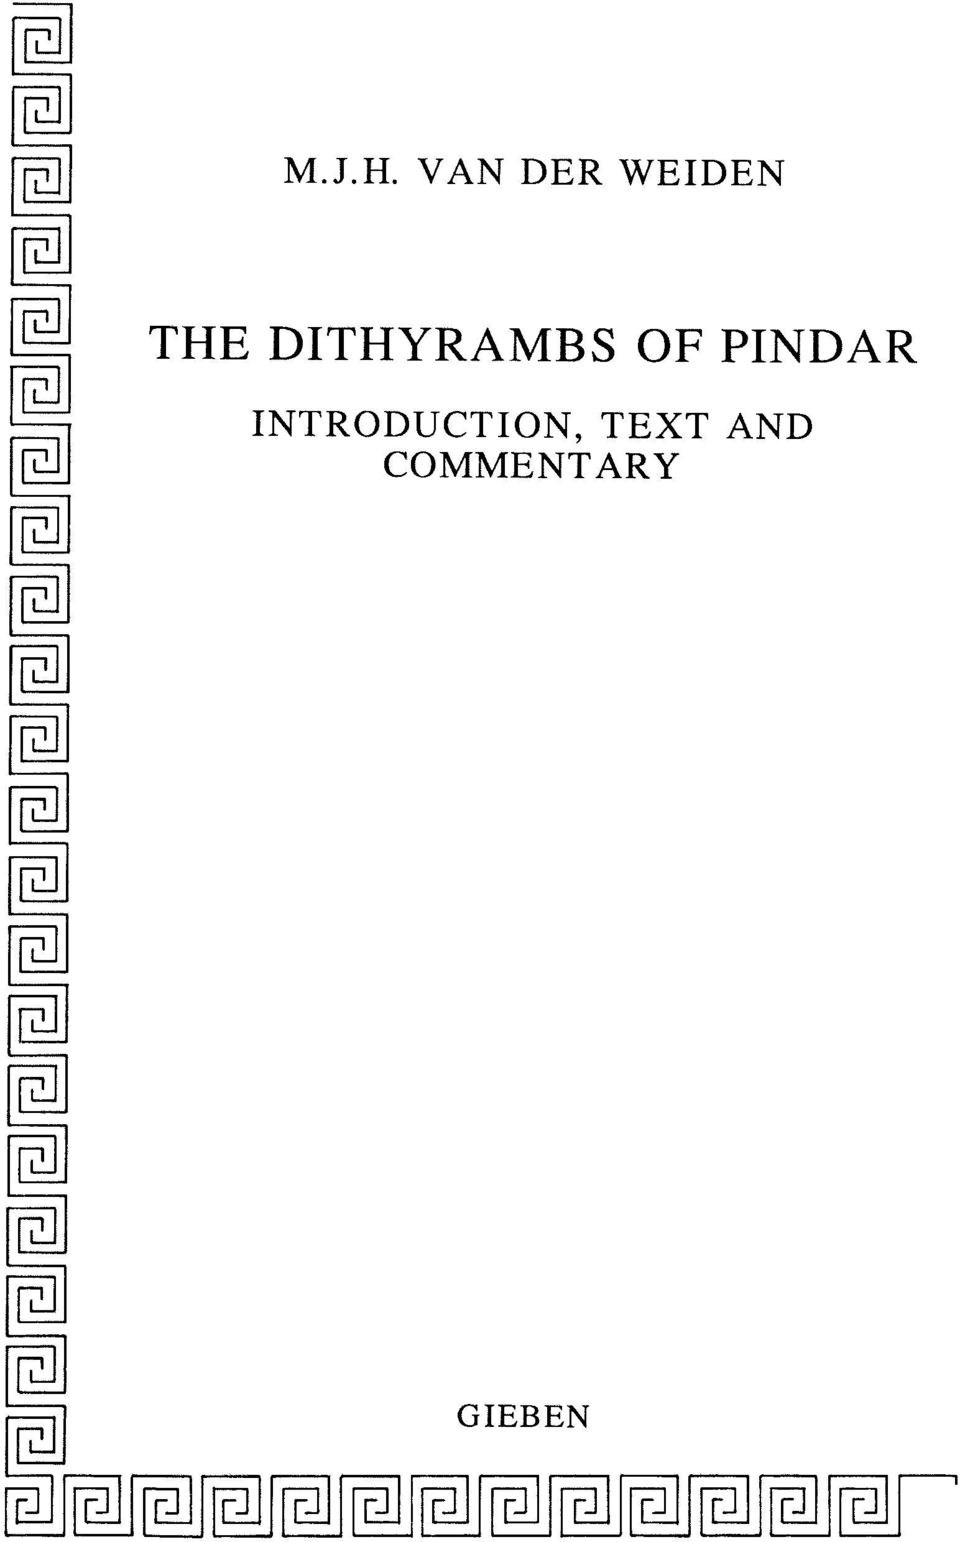 DITHYRAMBS OF PINDAR